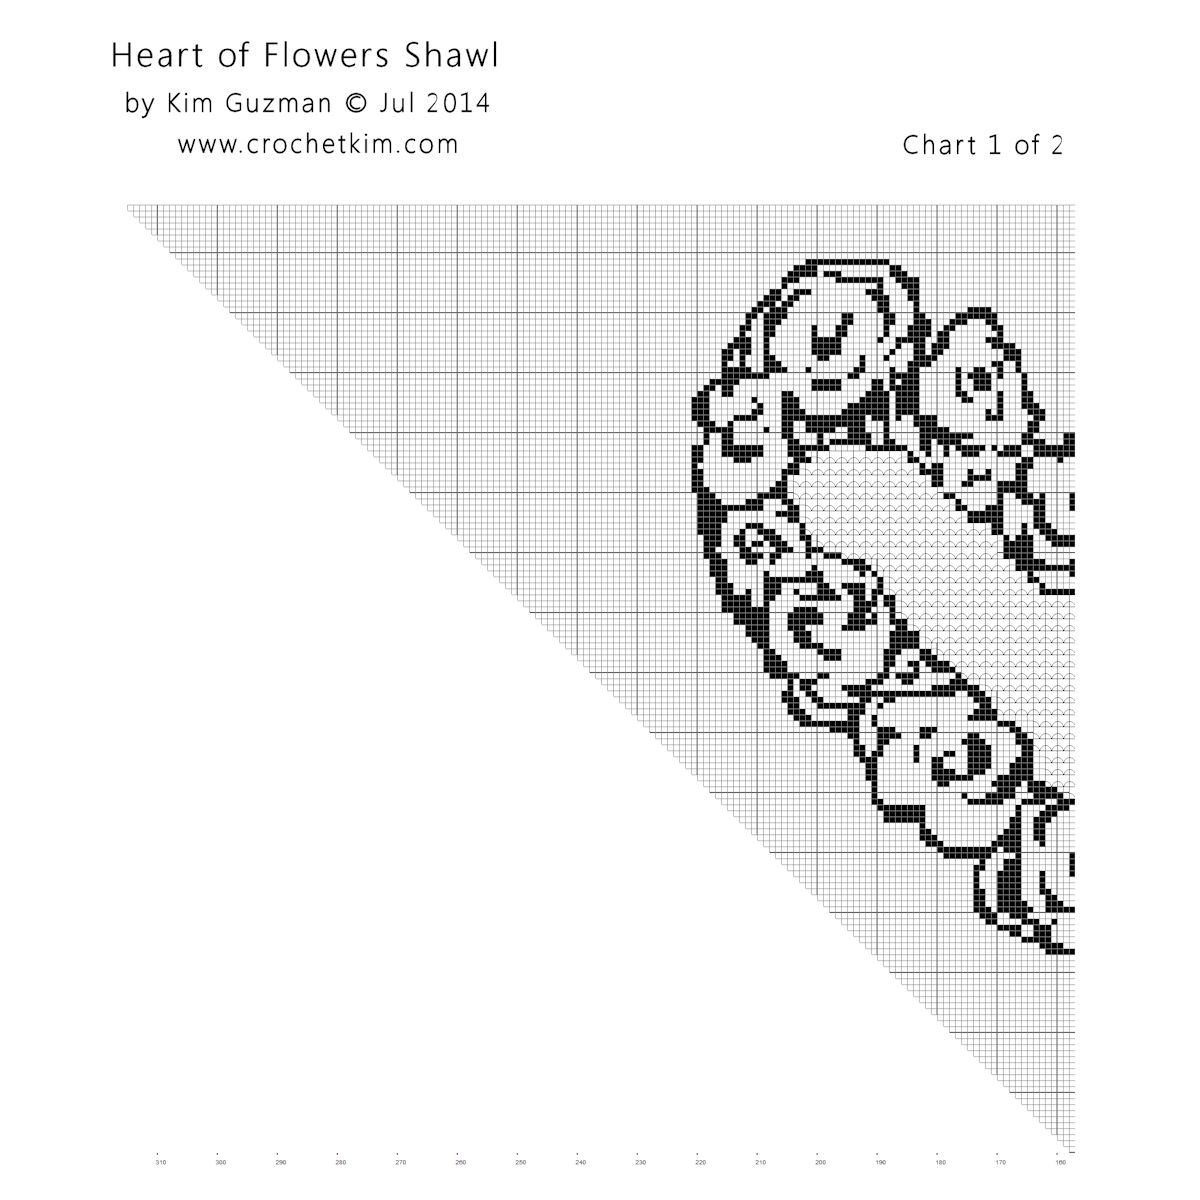 Heart of Flowers Filet Shawl Filet Crochet Chart | free crochet pattern @crochetkim